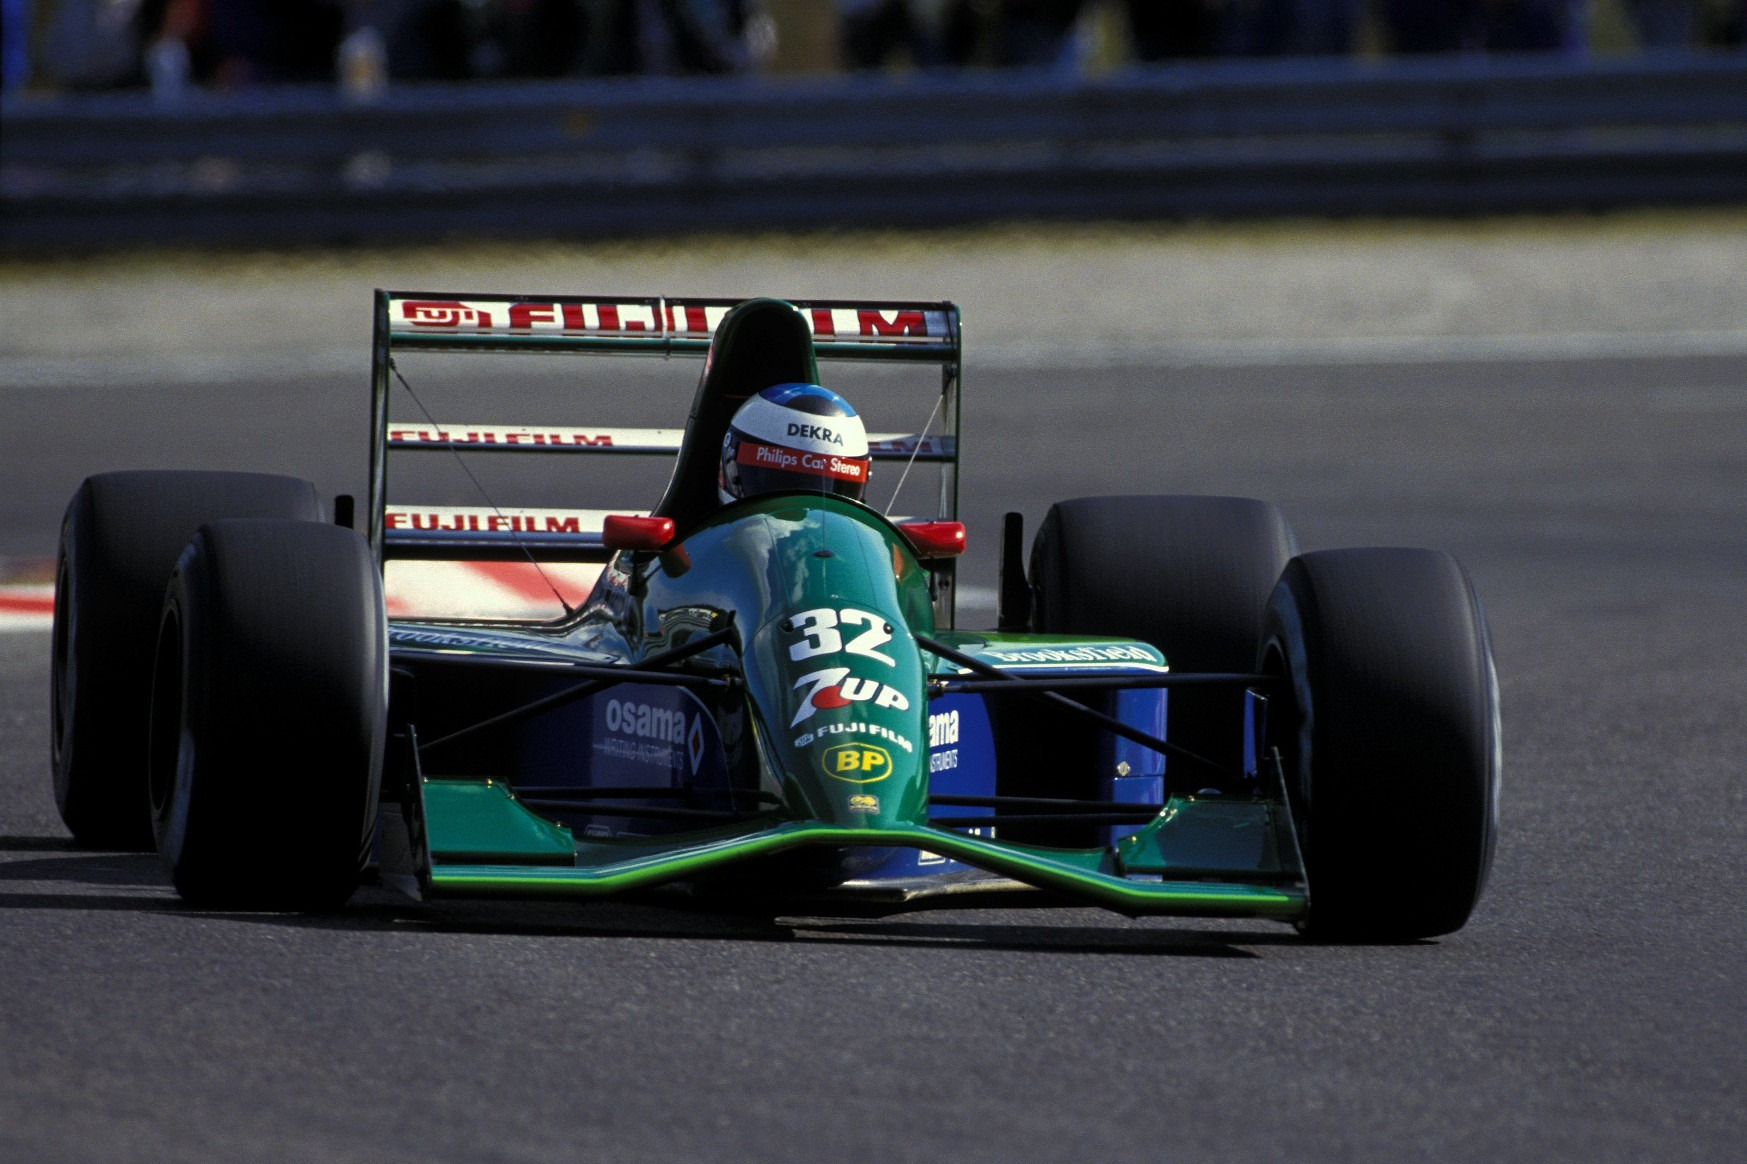 Schuamacher's race was short-lived, but his qualifying performance had set tongues wagging and created much interest in his signature